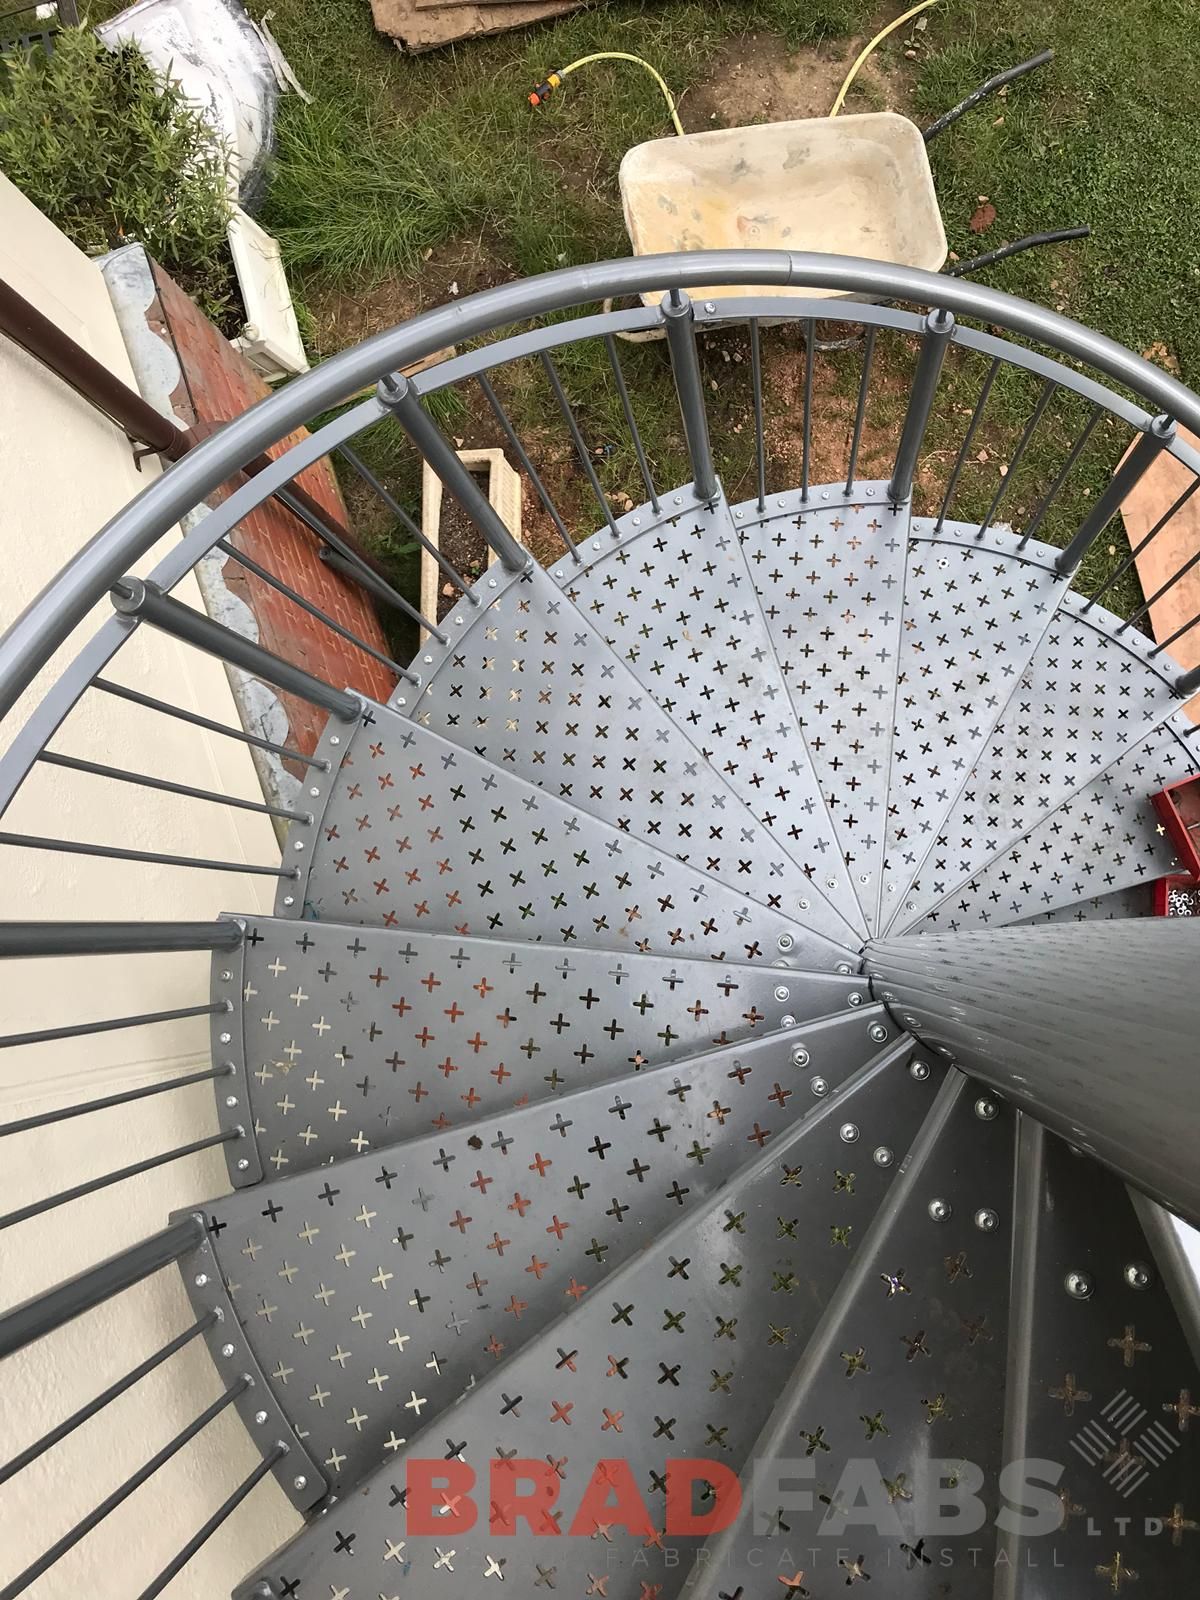 Decorative laser cut treads spiral staircase vertical bar balustrade mild steel galvanised powder coated